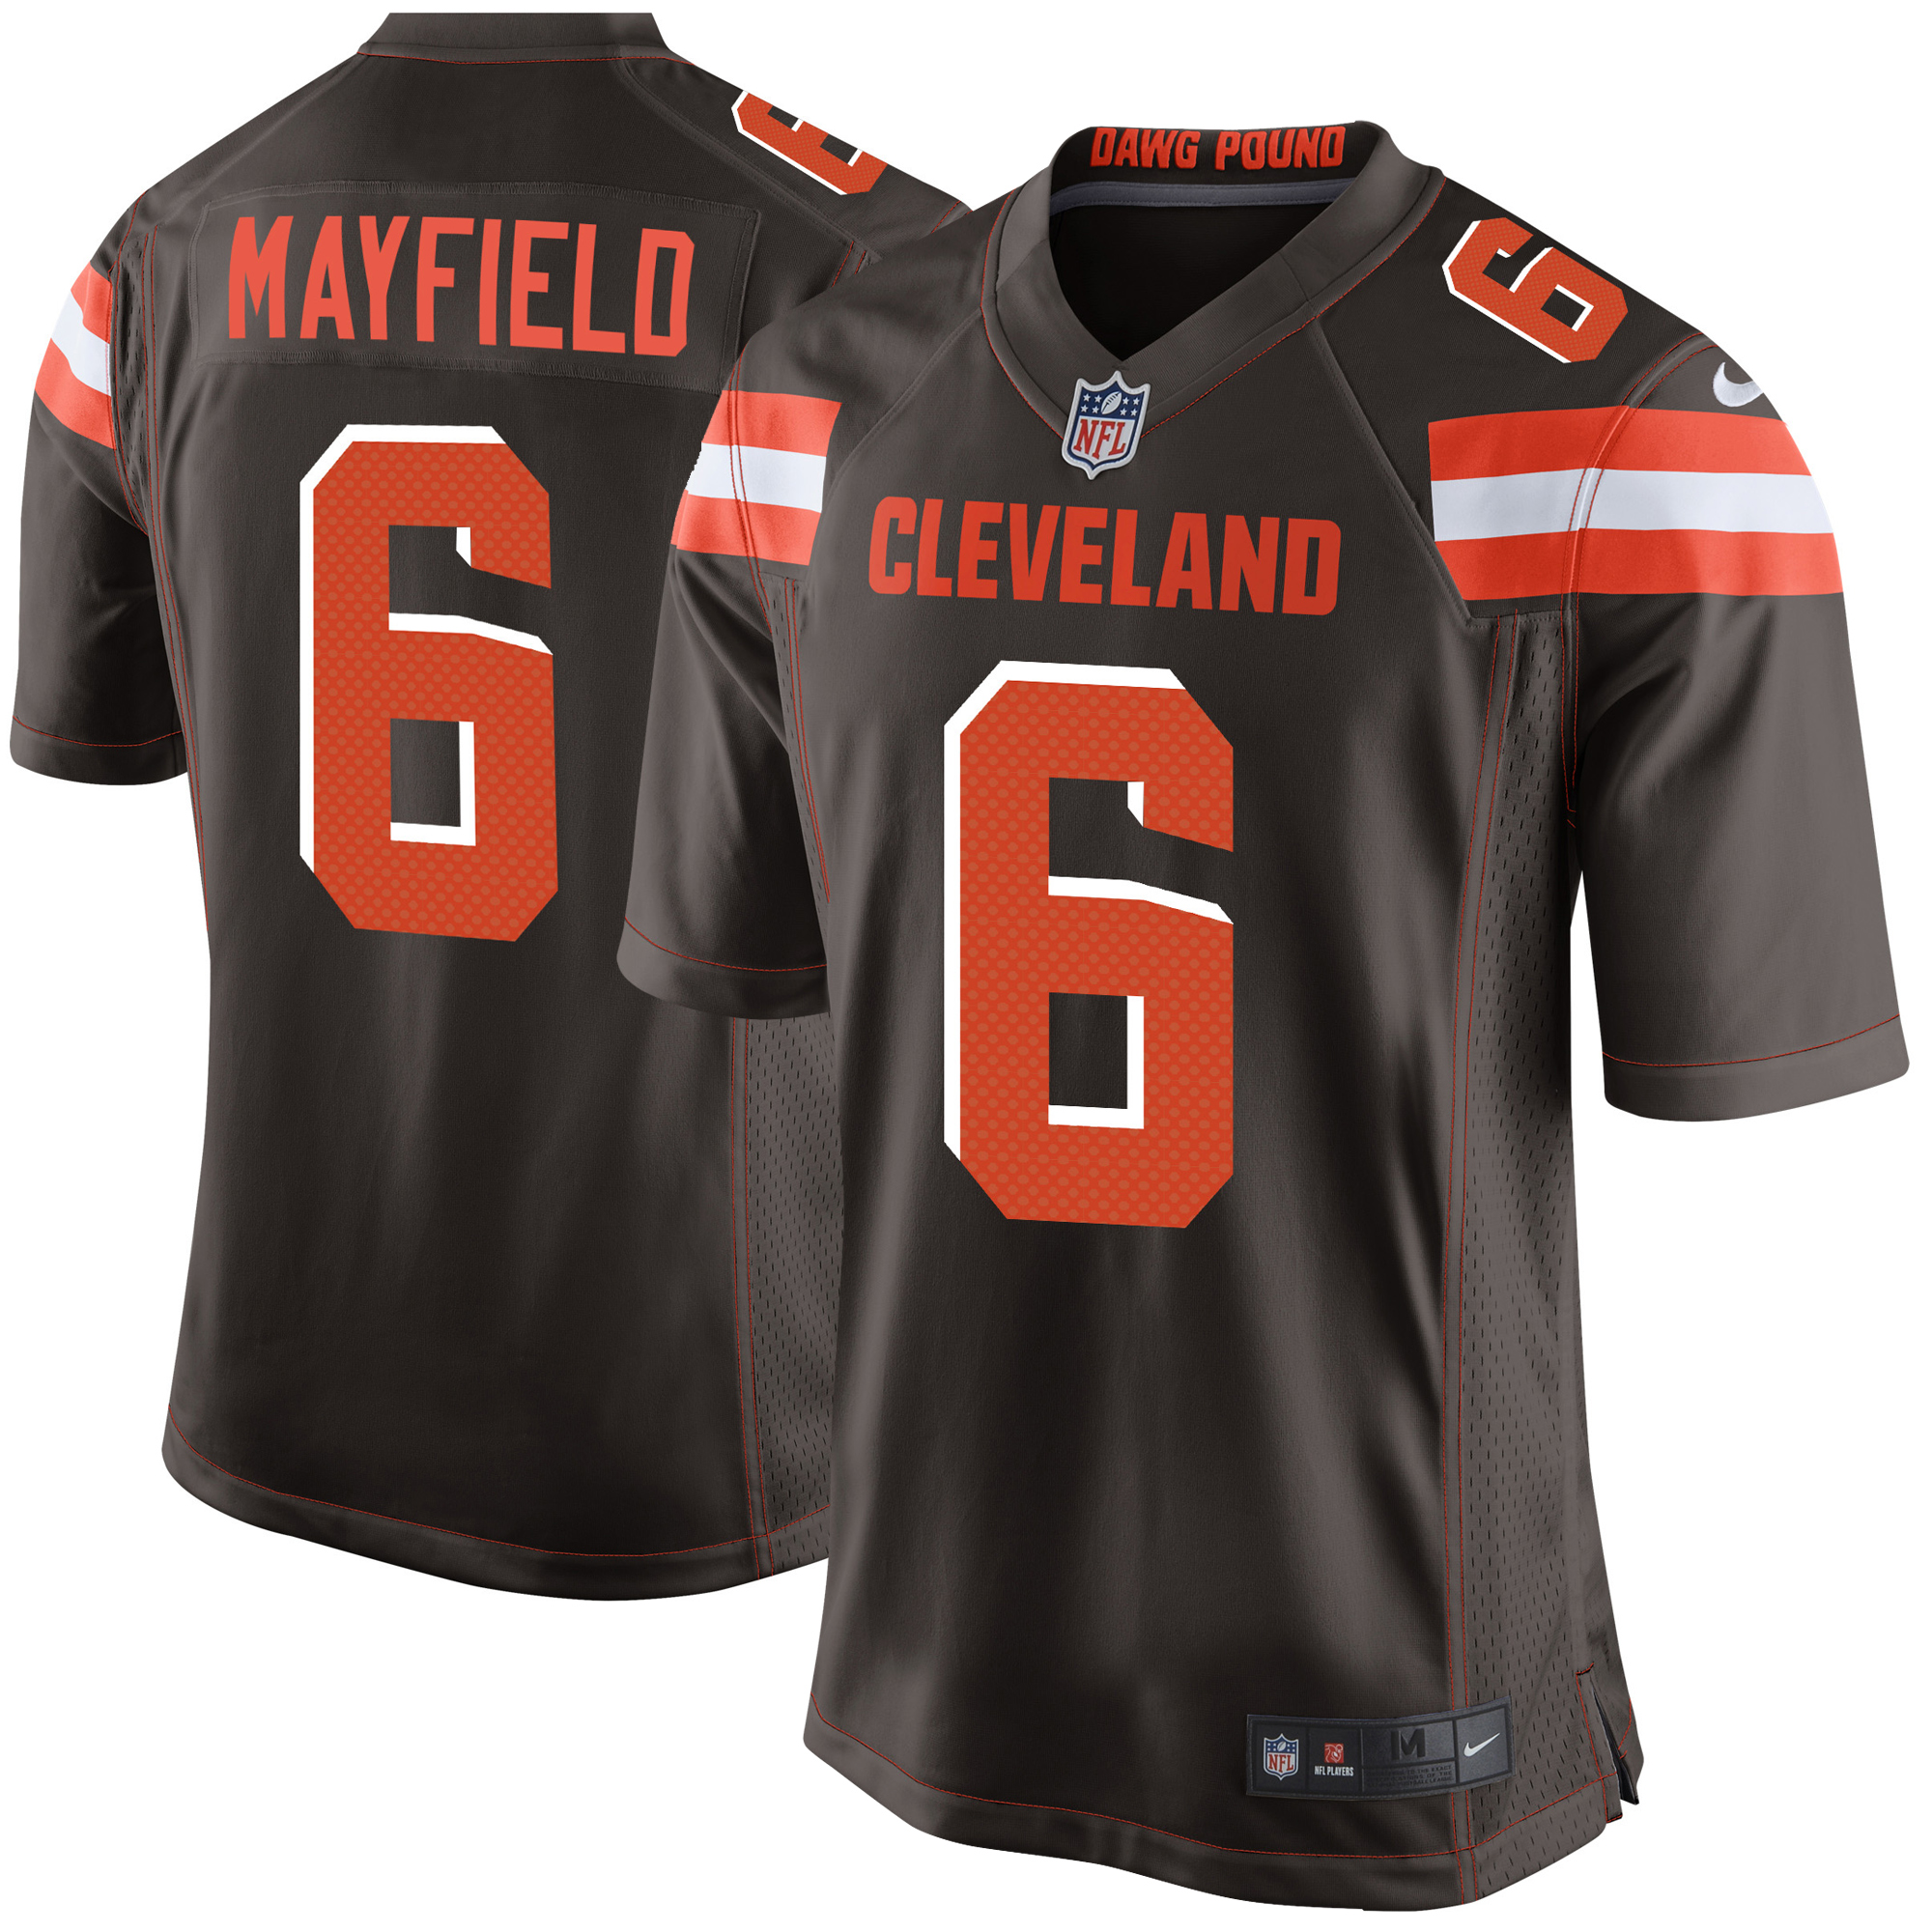 Baker Mayfield Cleveland Browns Nike Youth Game Jersey - Brown